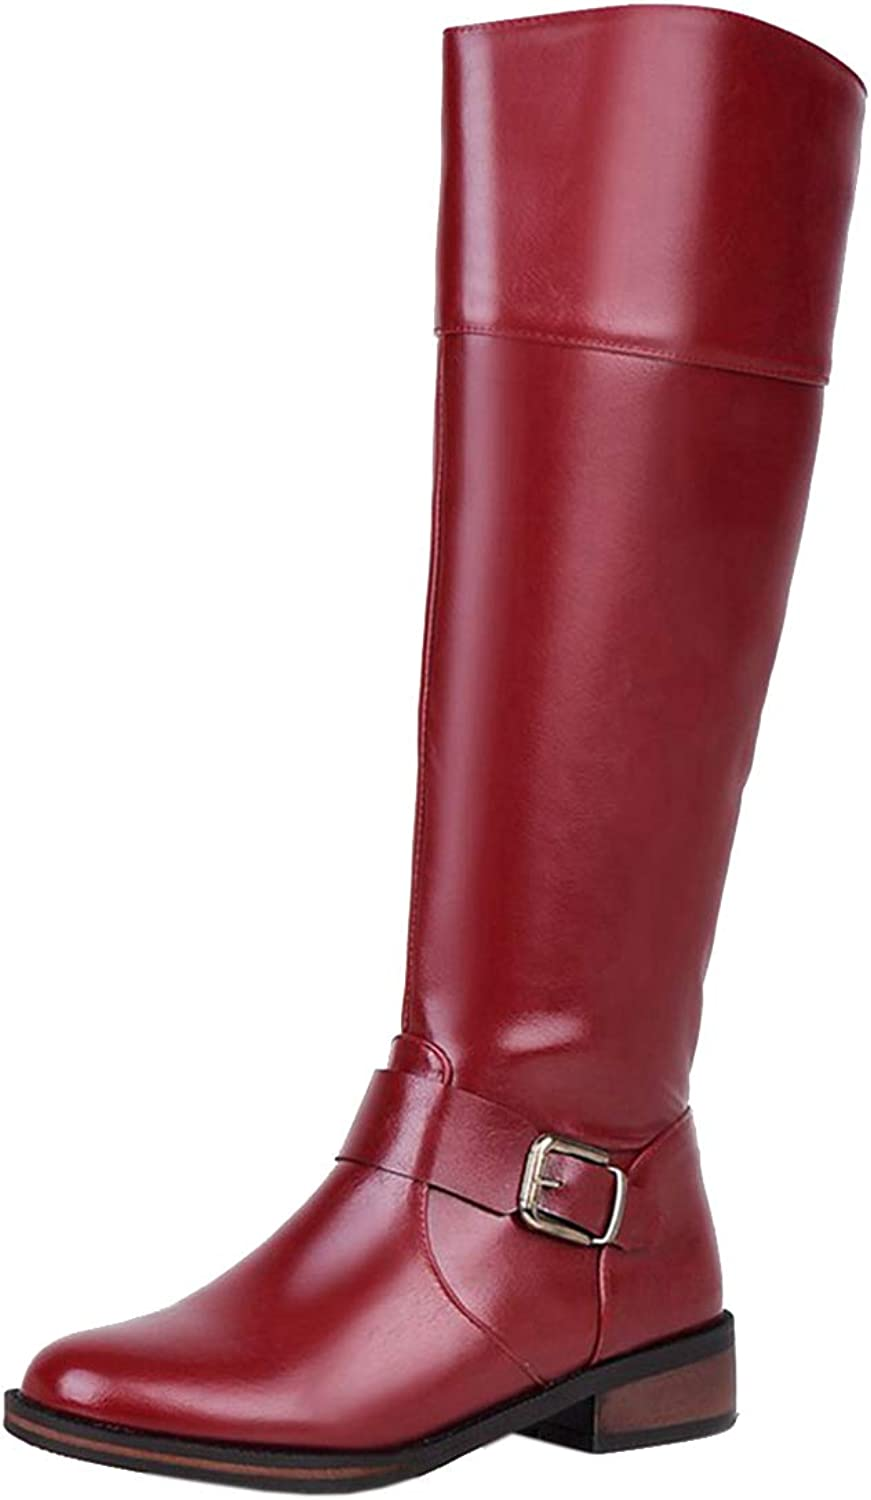 Vitalo Womens Low Block Heel Zip Up Knee High Riding Boots